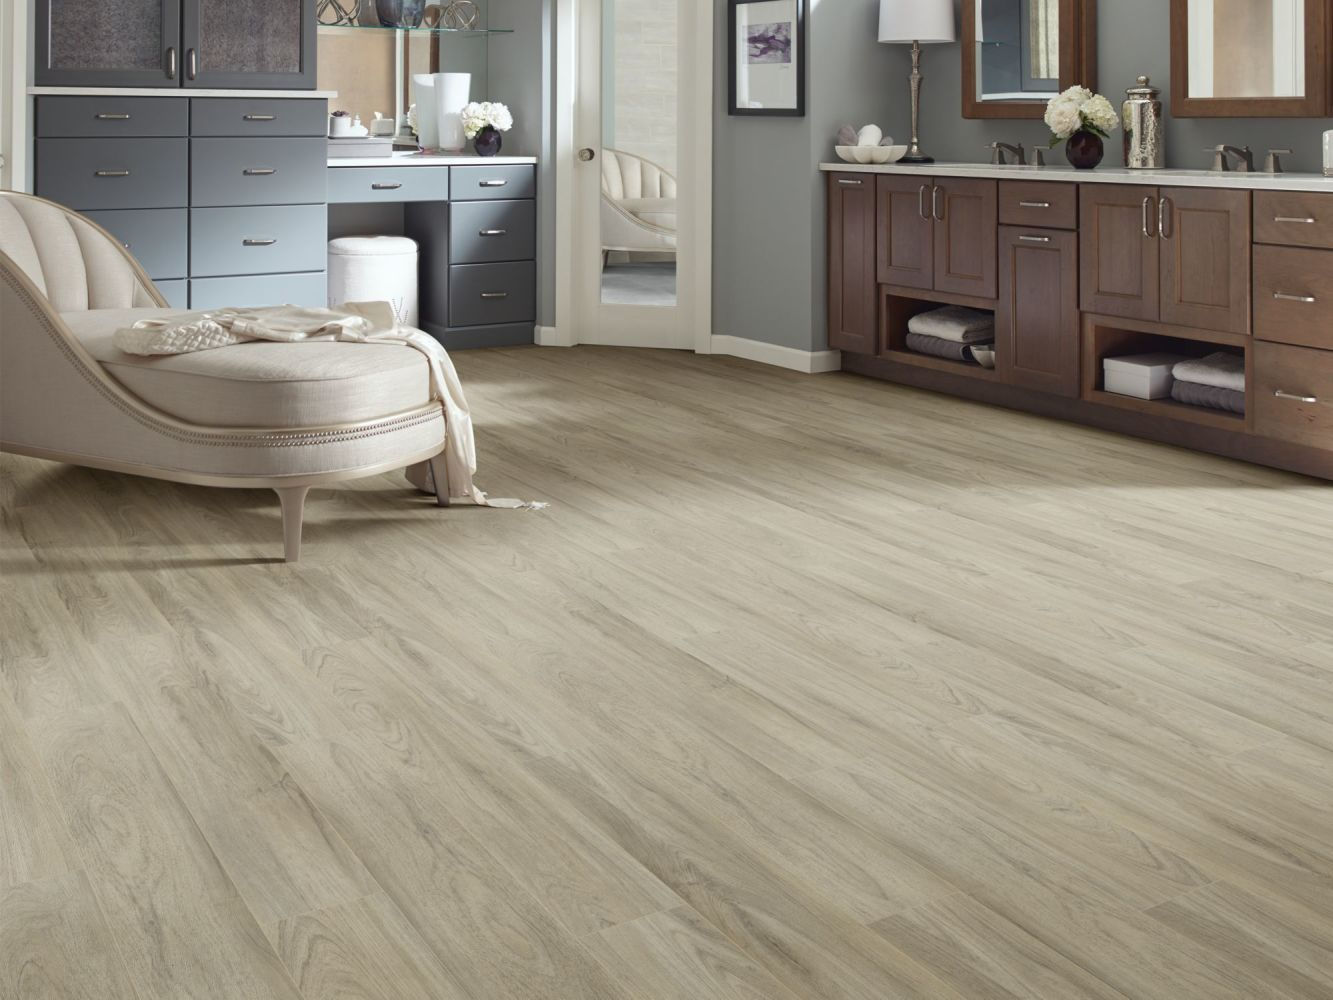 Shaw Floors Vinyl Residential Pantheon HD Plus Pisa 01027_2001V